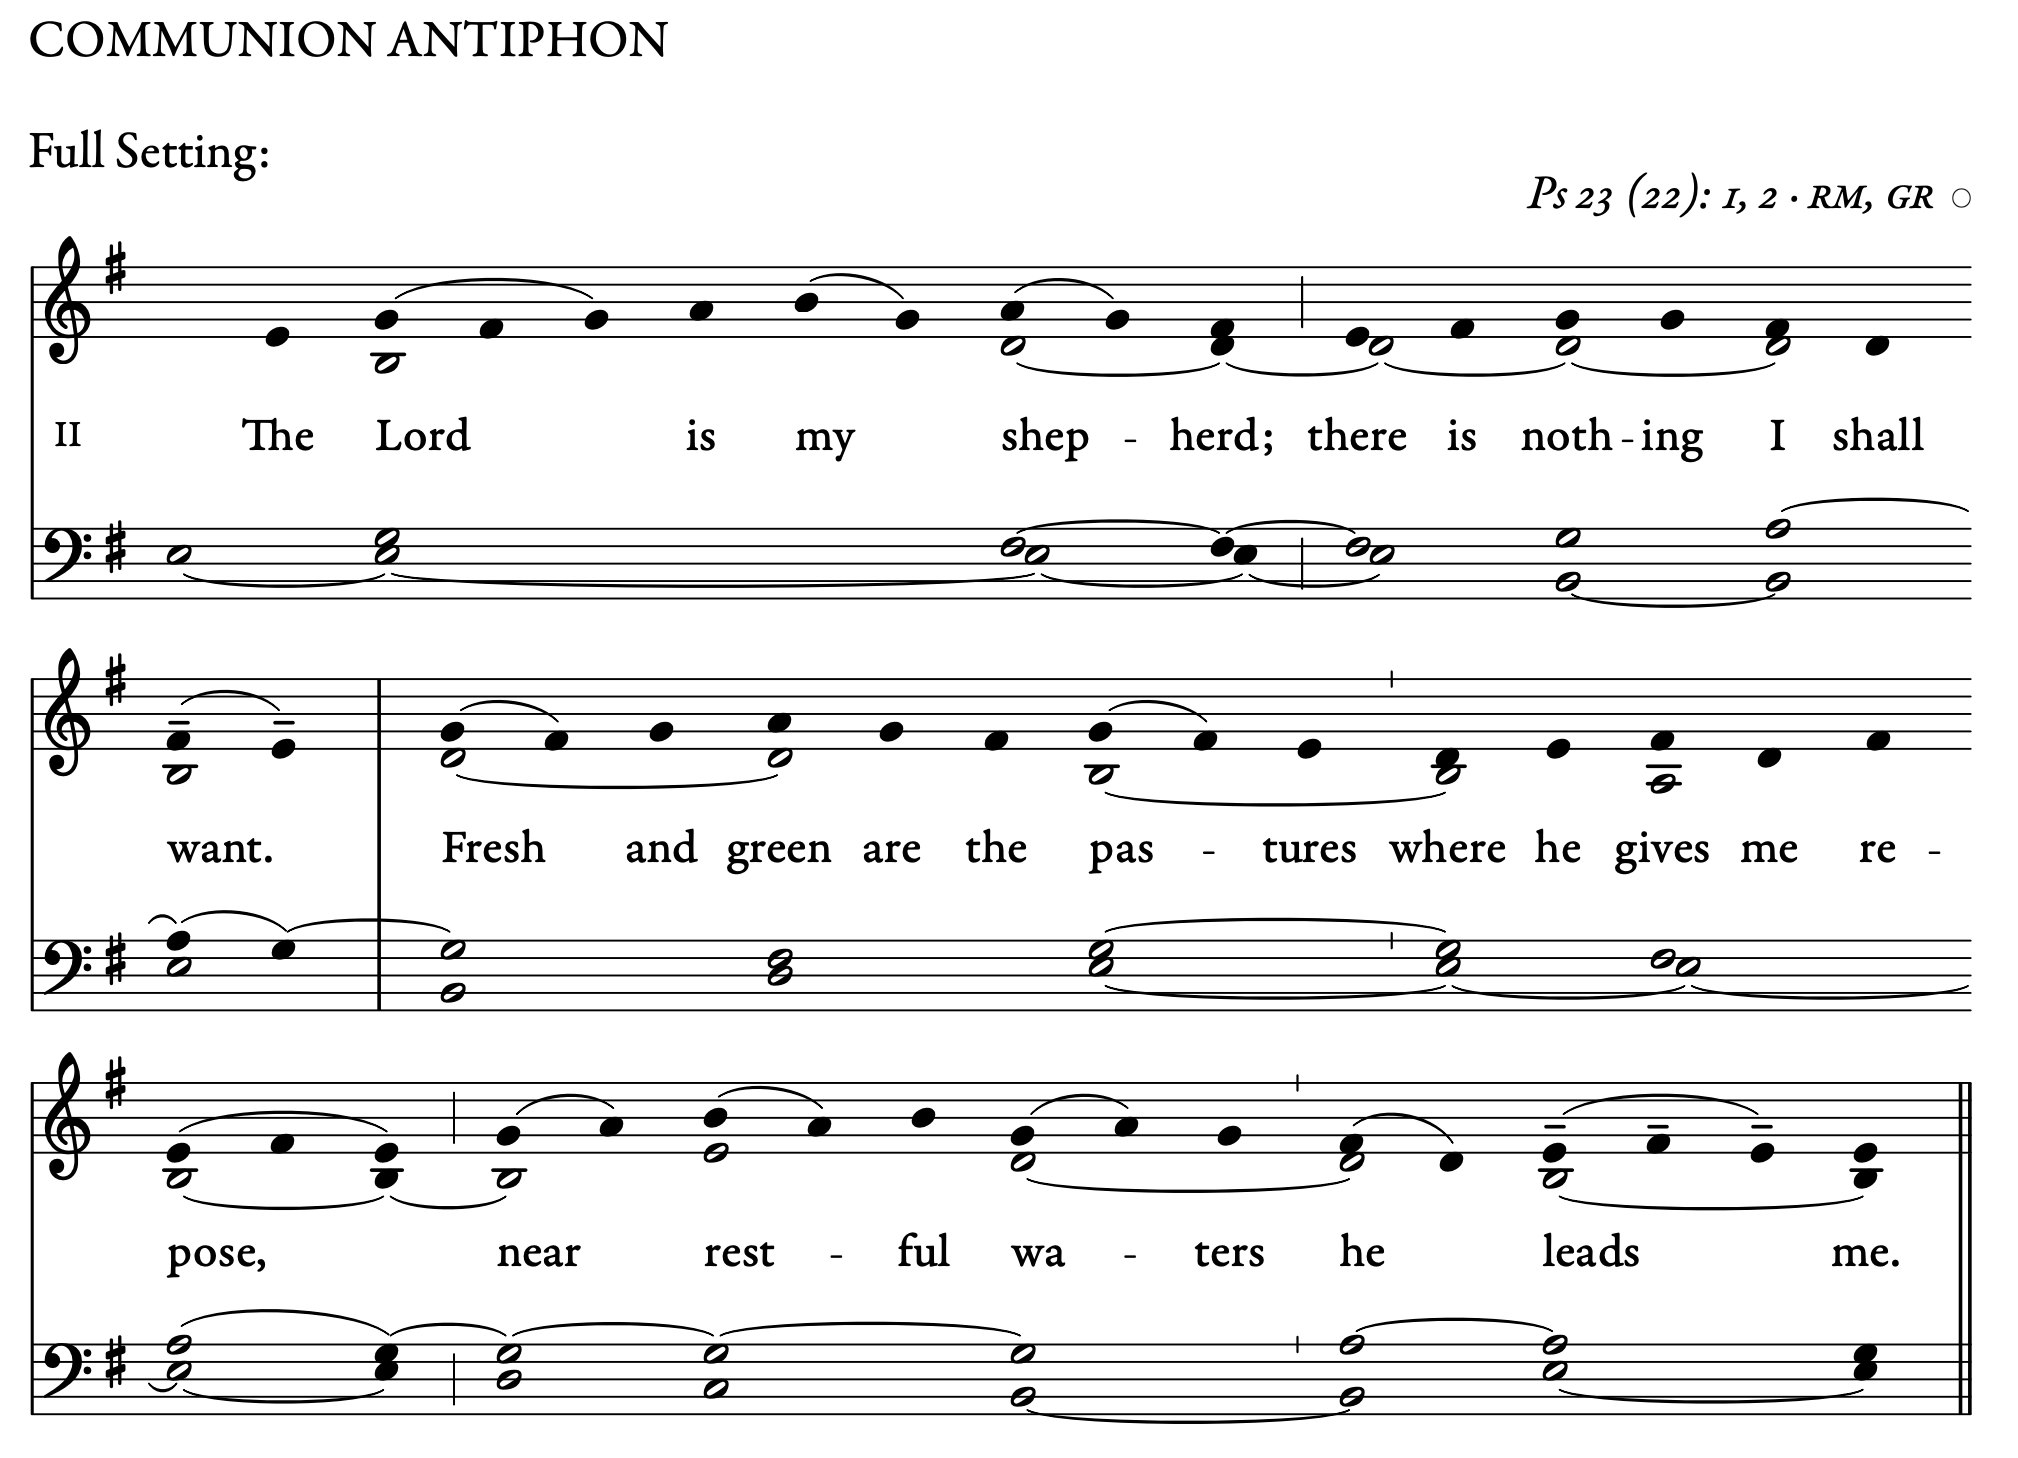 Entrance Antiphon